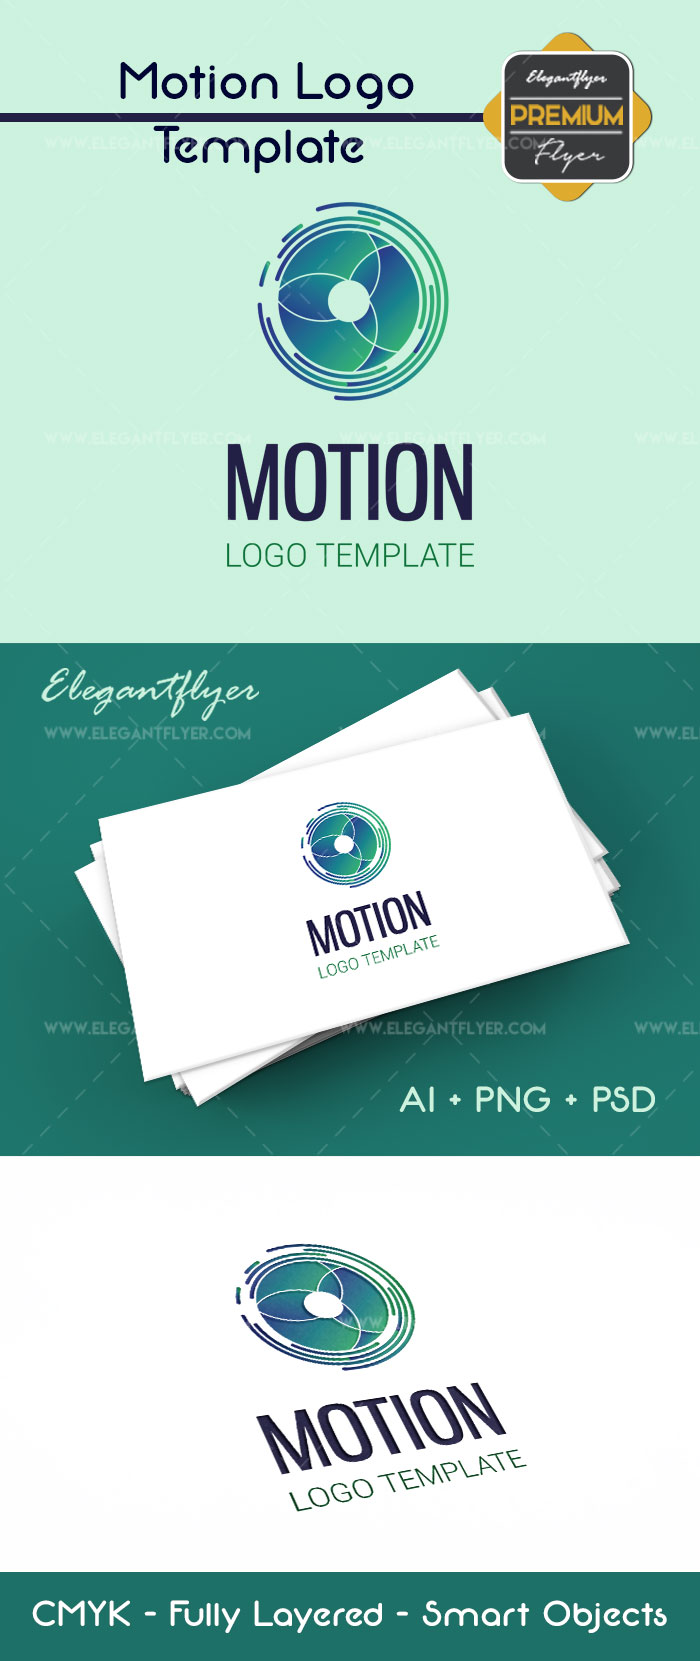 Motion Premium Logo Template By Elegantflyer